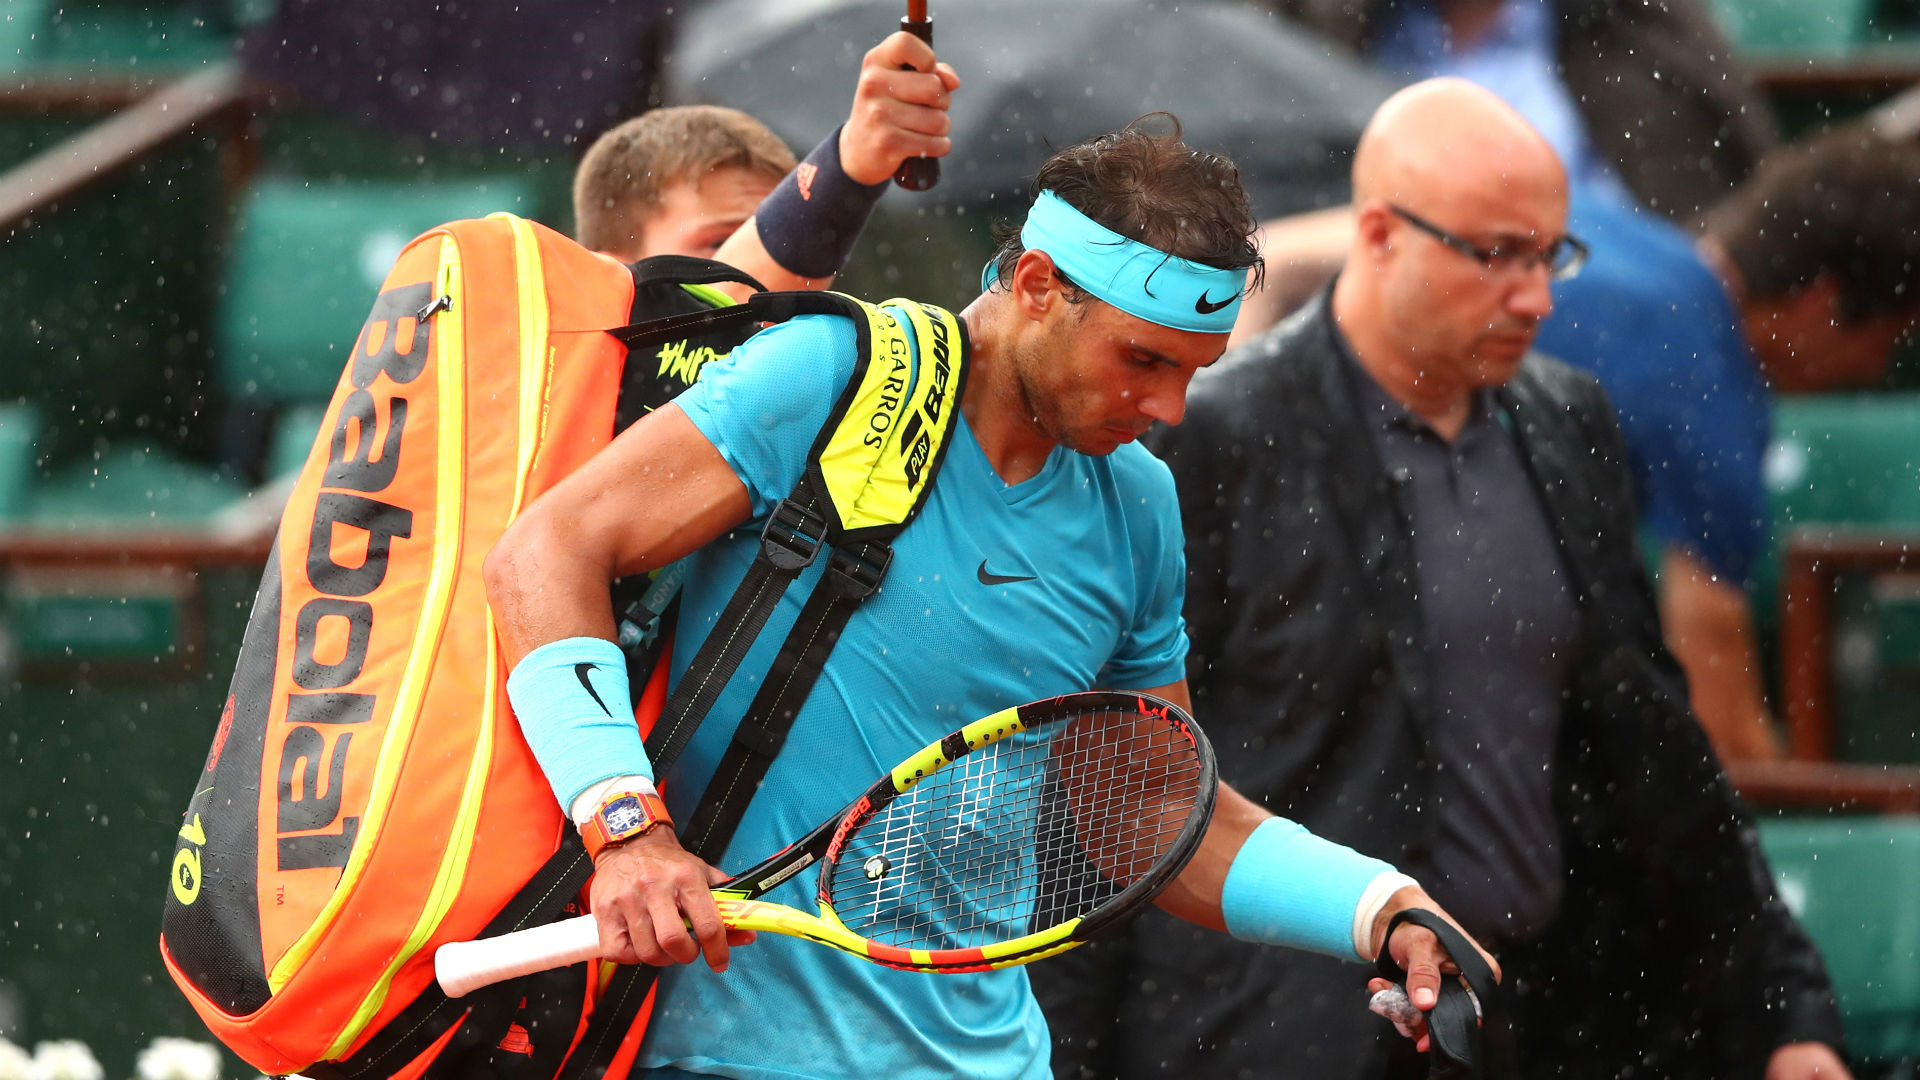 Rafael Nadal boosted by rain delay as he storms beyond Diego Schwartzman